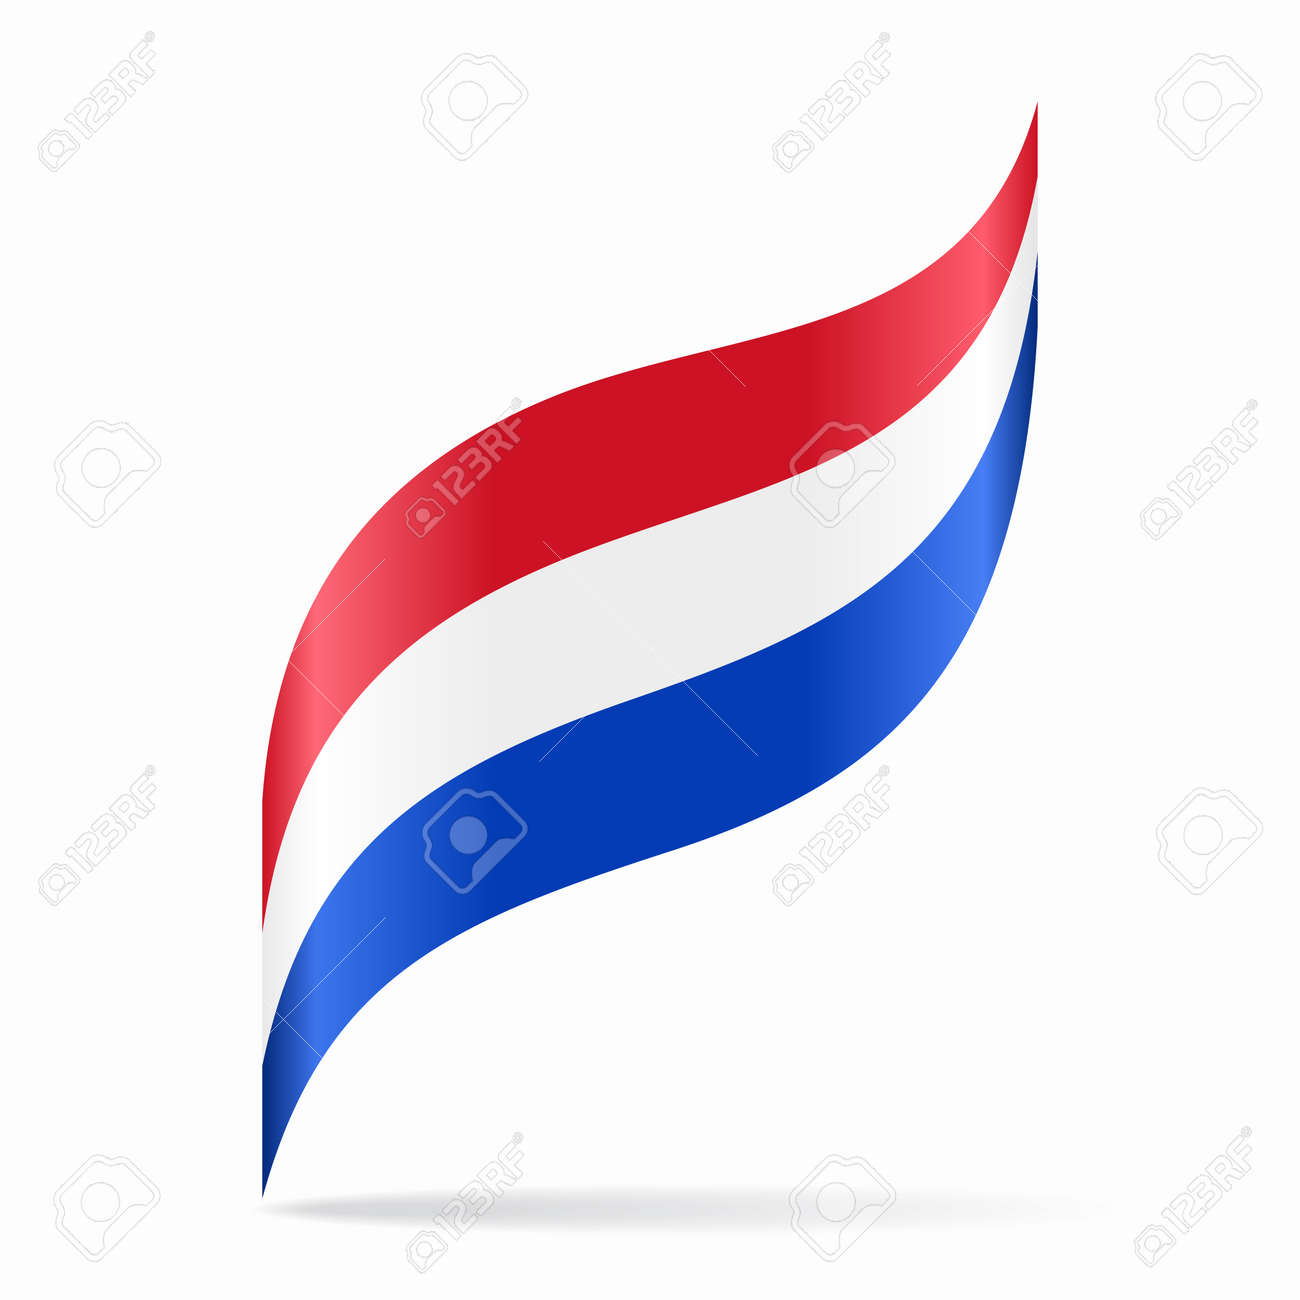 Dutch flag wavy abstract background. Vector illustration. - 159448534